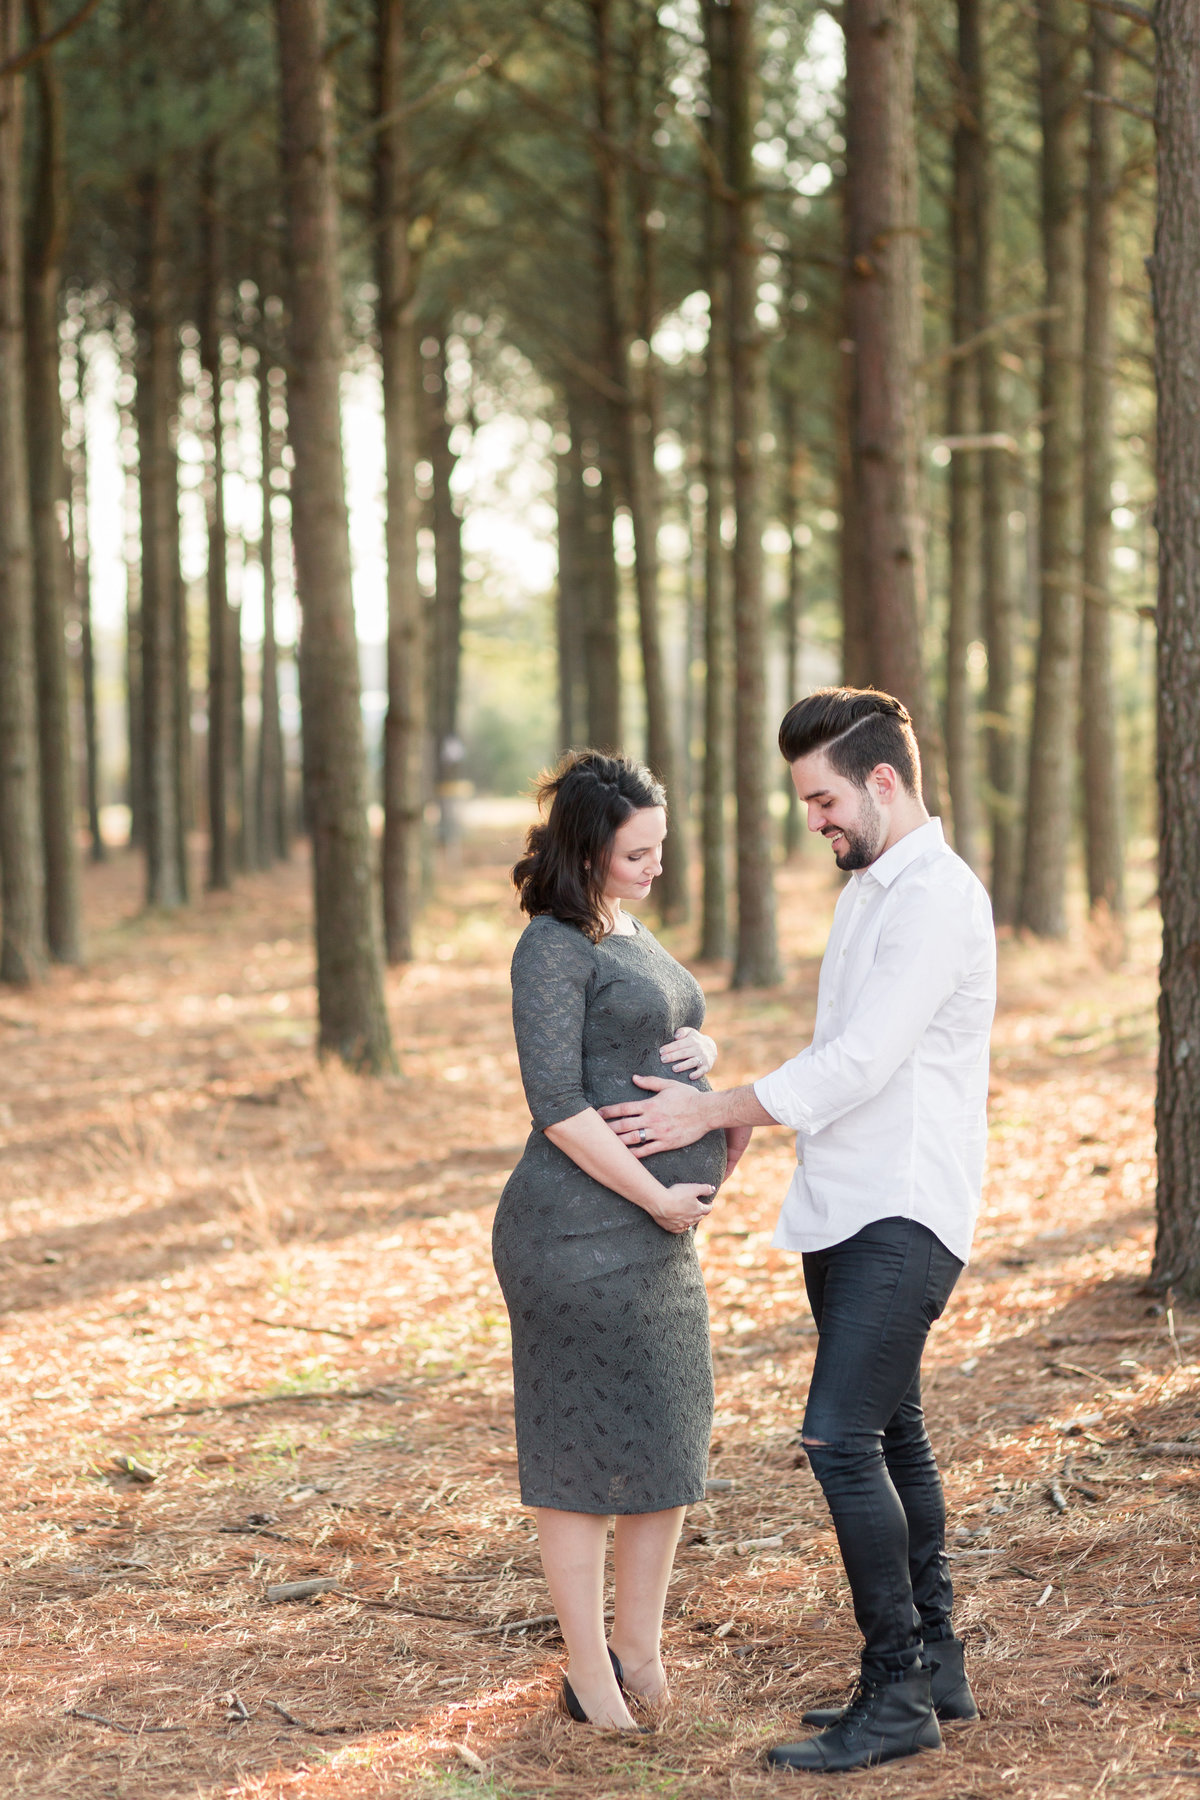 Sam and Stephanie Maternity Session-Samantha Laffoon Photography-57